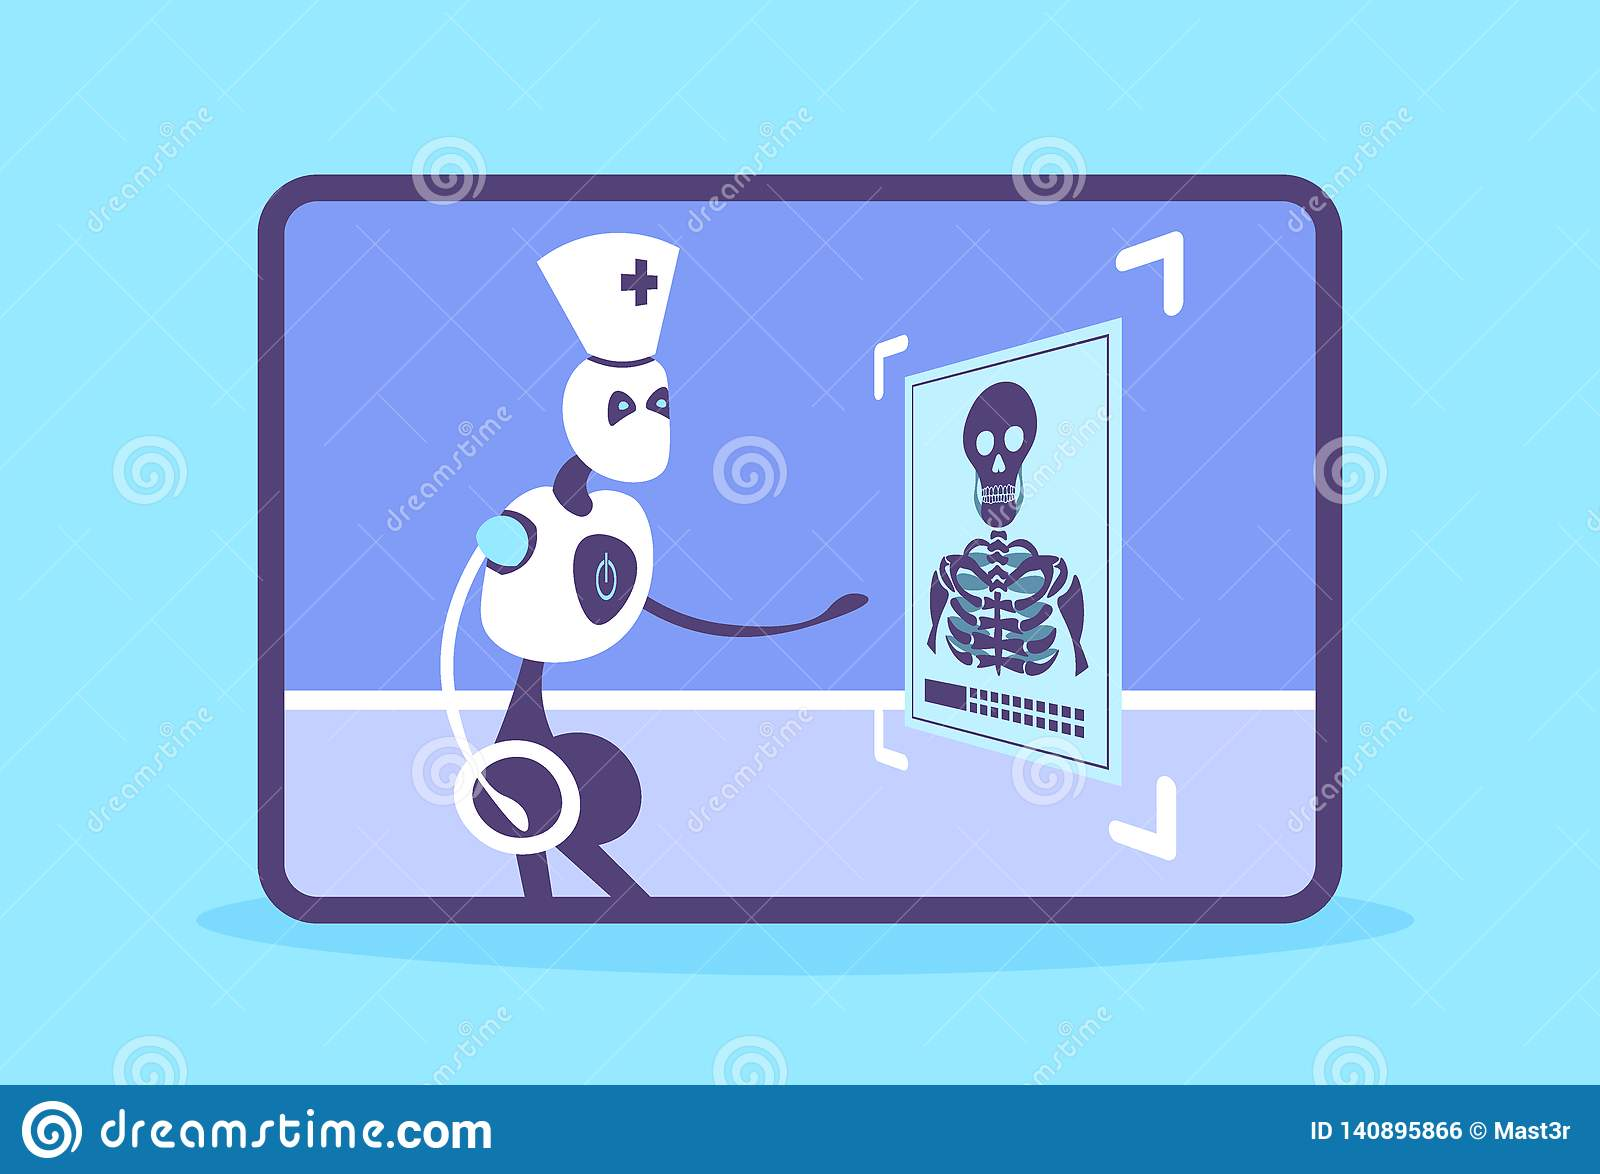 Humanoid robot doctor examining x-ray photograph cyborg recognizing patient radiography artificial intelligence medicine